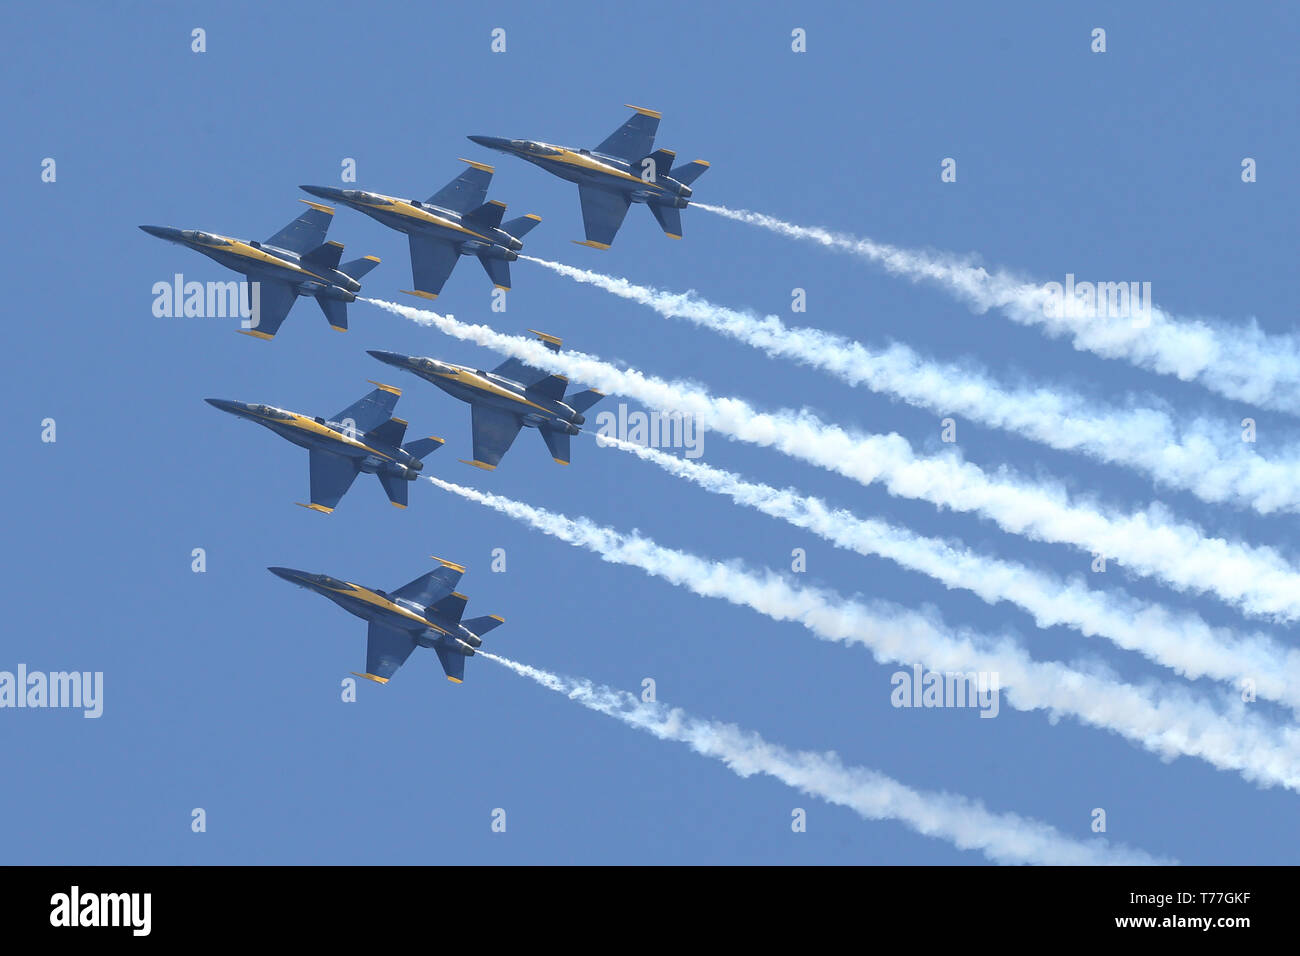 U S Navy And Canadian Air Force To The Base Stock Photos ...